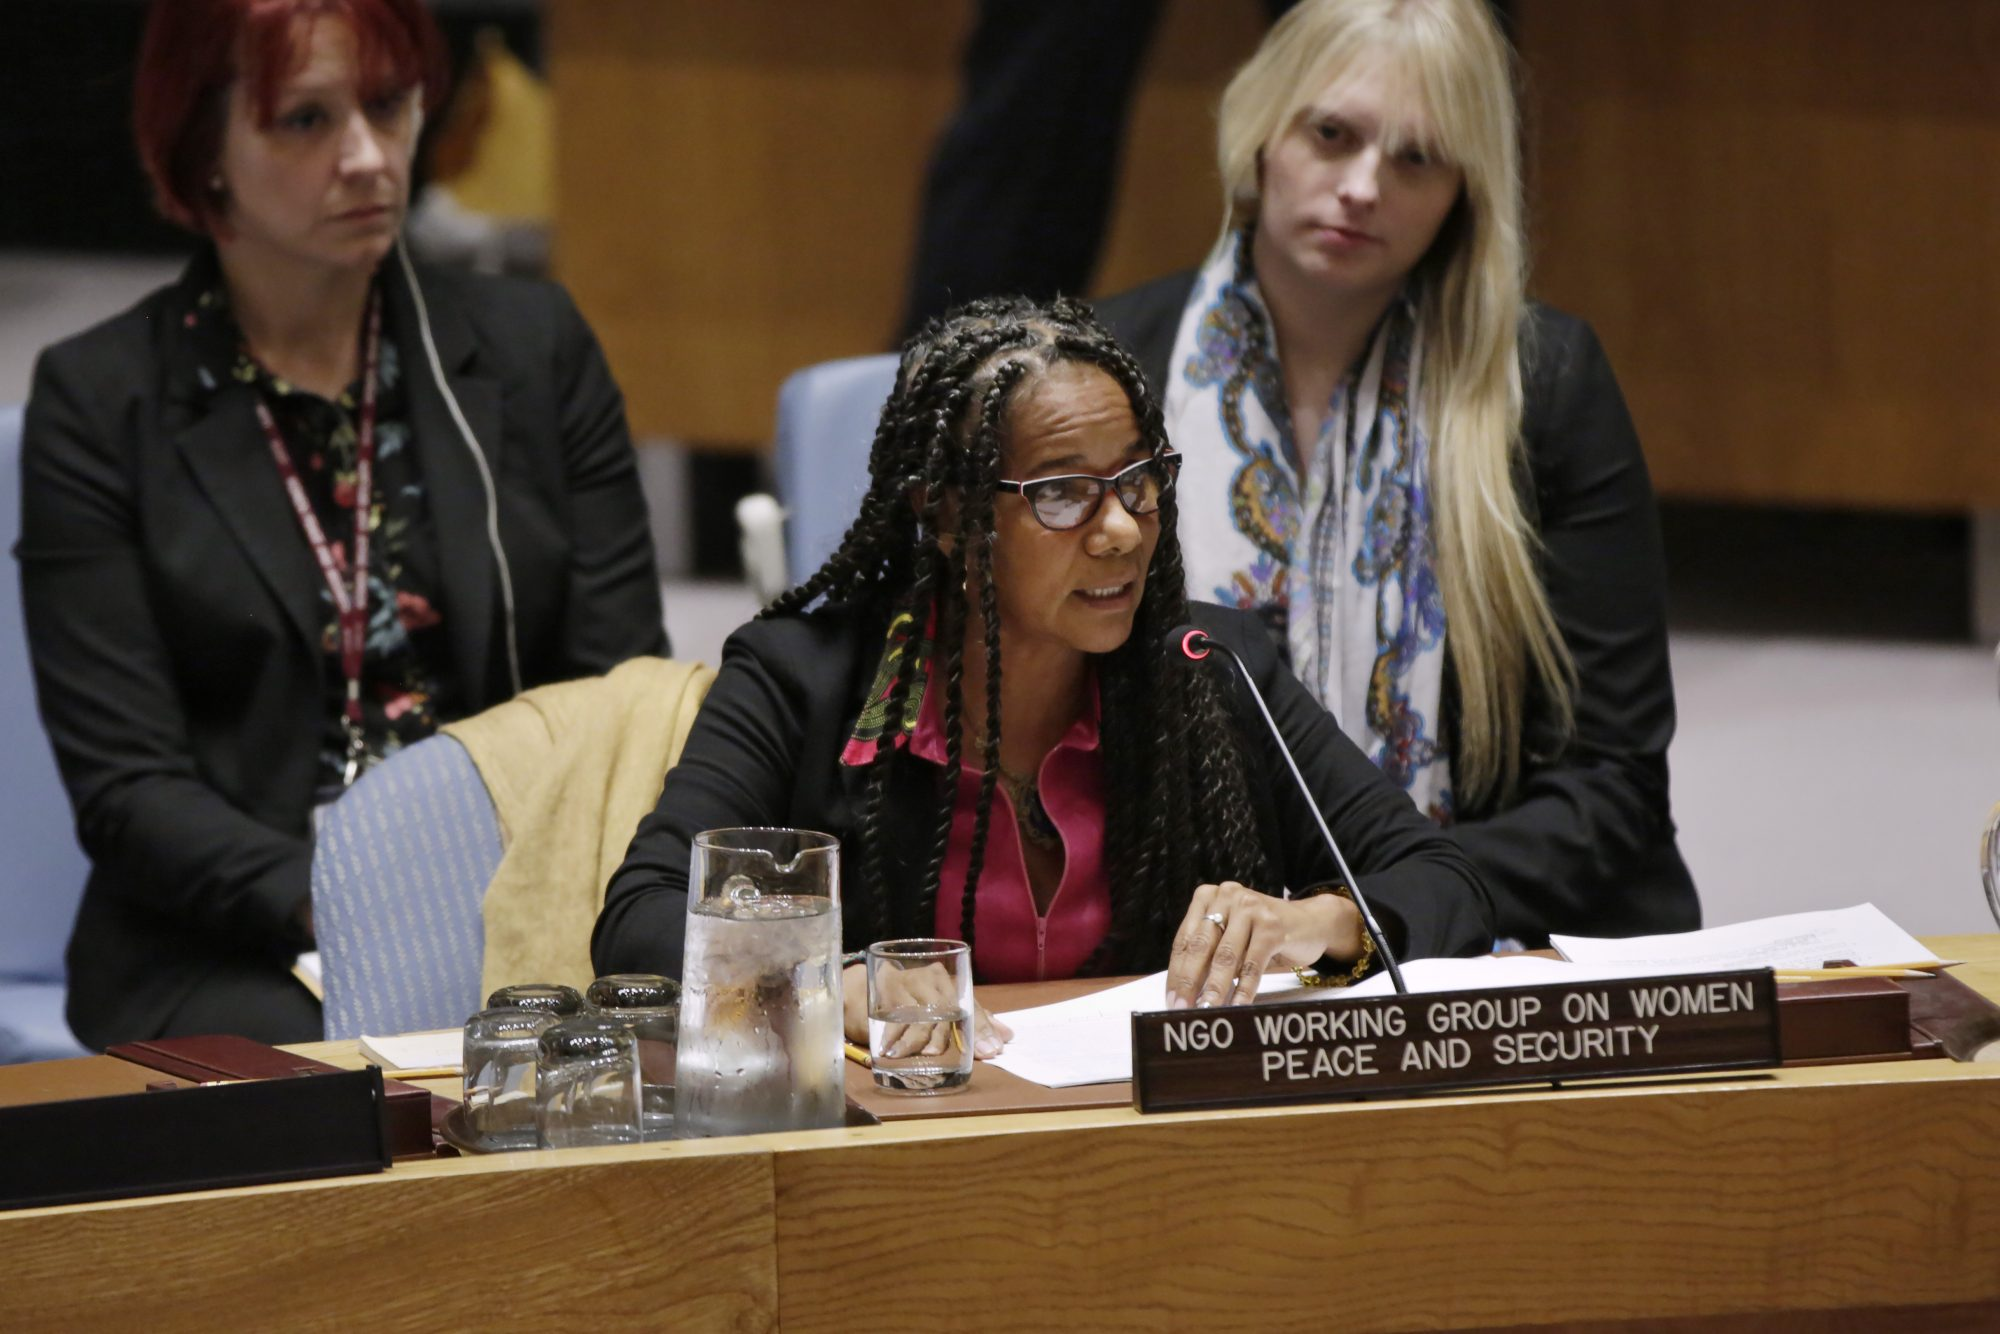 Statement by Ms. Charo Mina-Rojas at UN Security Council Open Debate on Women, Peace and Security